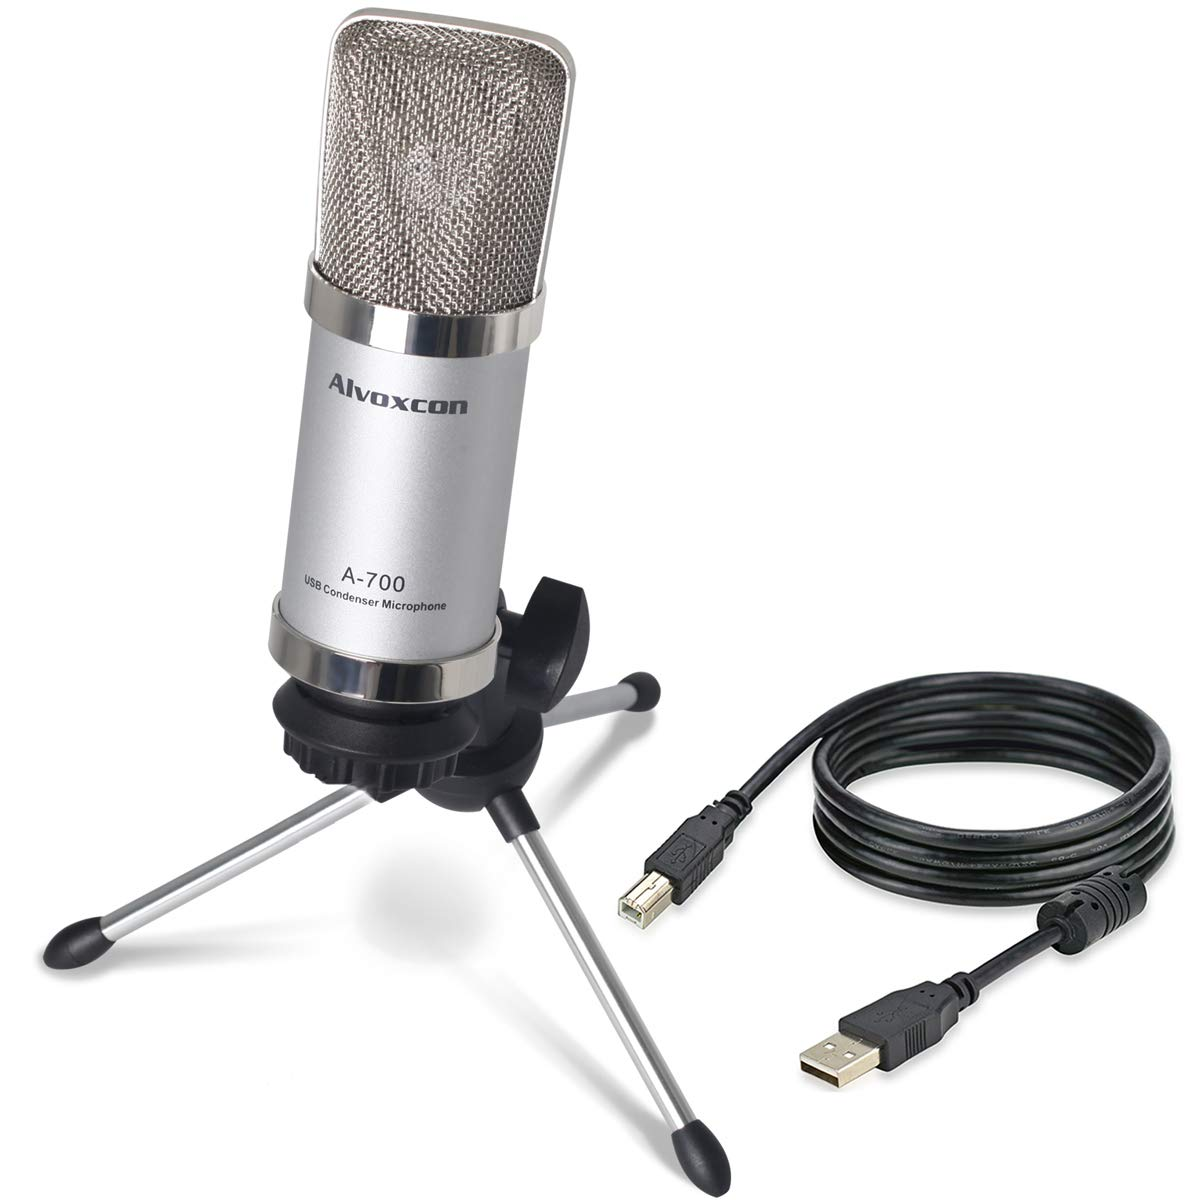 top 5 cheap usb microphones 2019 you can buy today own snap. Black Bedroom Furniture Sets. Home Design Ideas